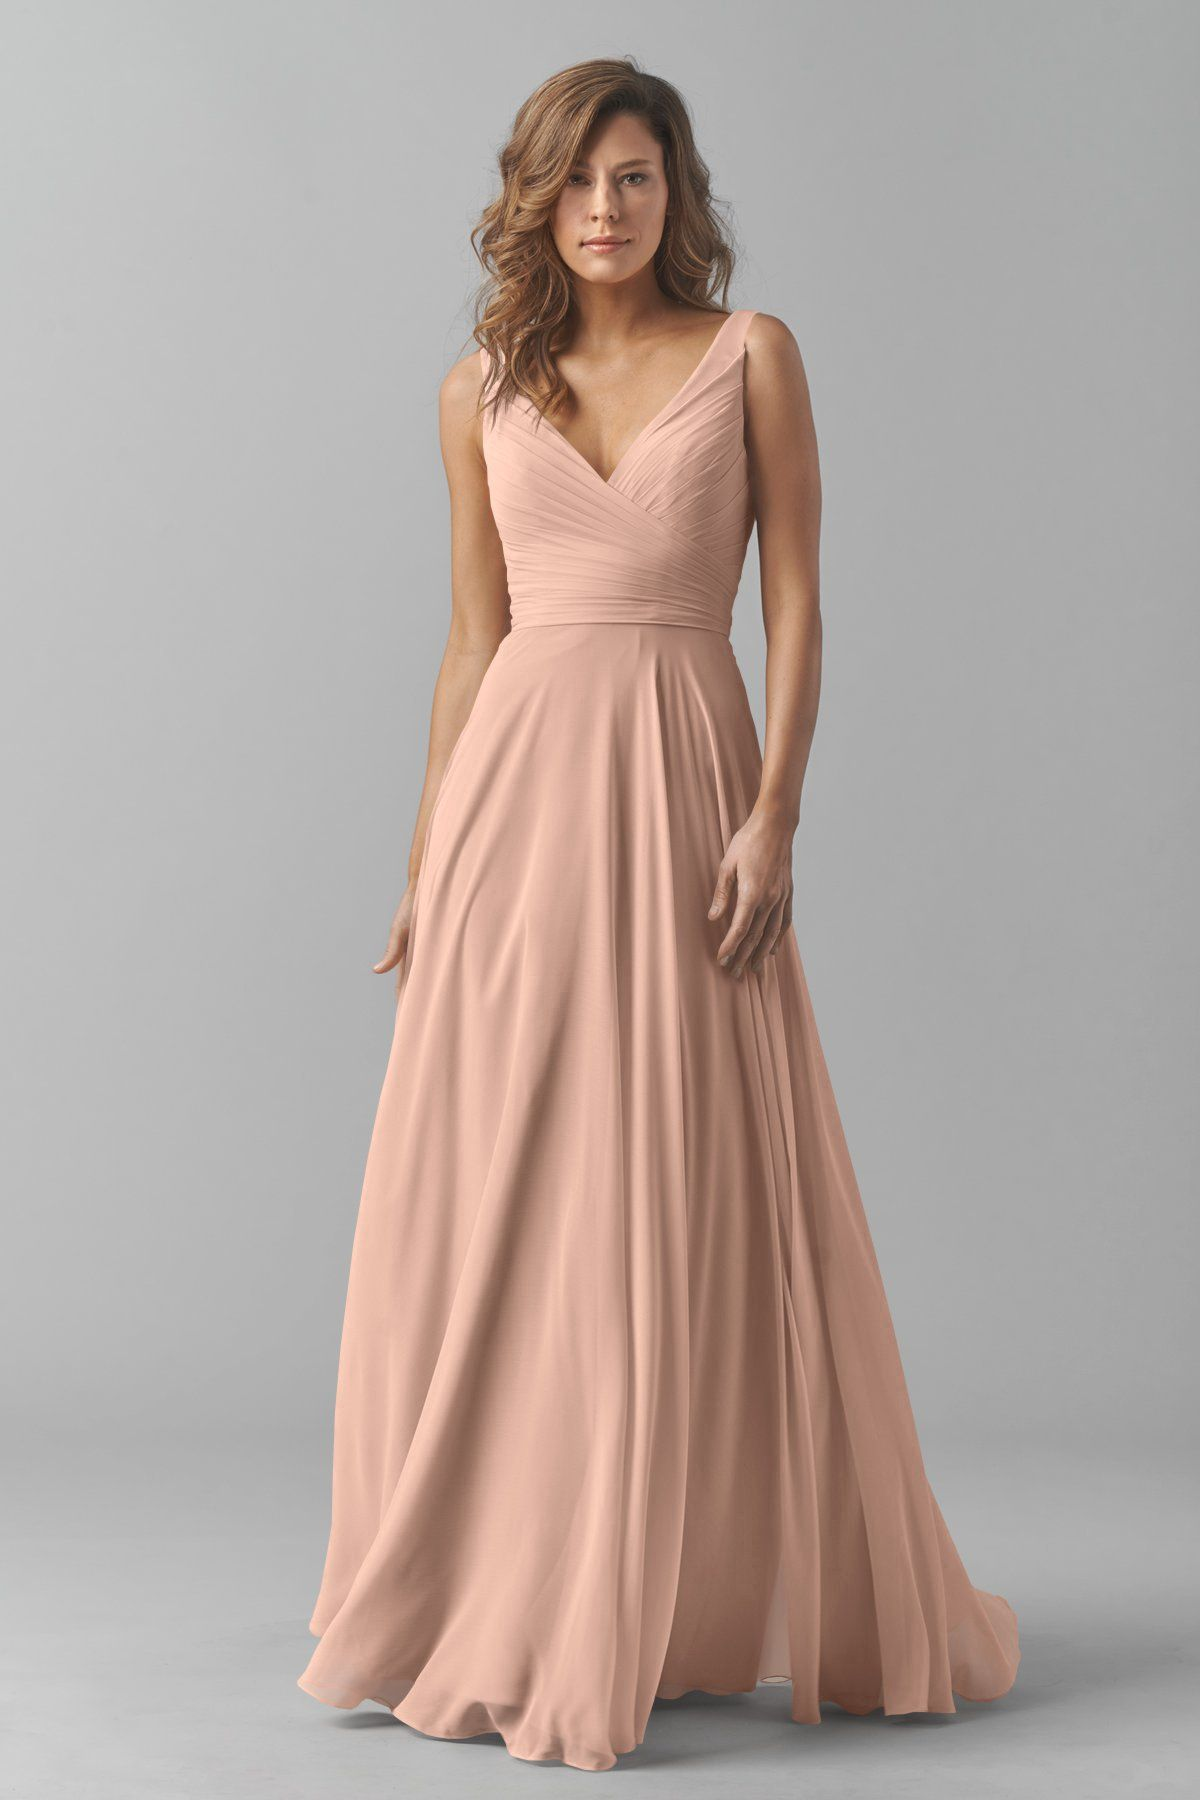 Mediauploadsproduct8542icoloredbuffg bridesmaid dresses shop watters bridesmaid dress in crinkle chiffon at weddington way find the perfect made to order bridesmaid dresses for your bridal party in your ombrellifo Images